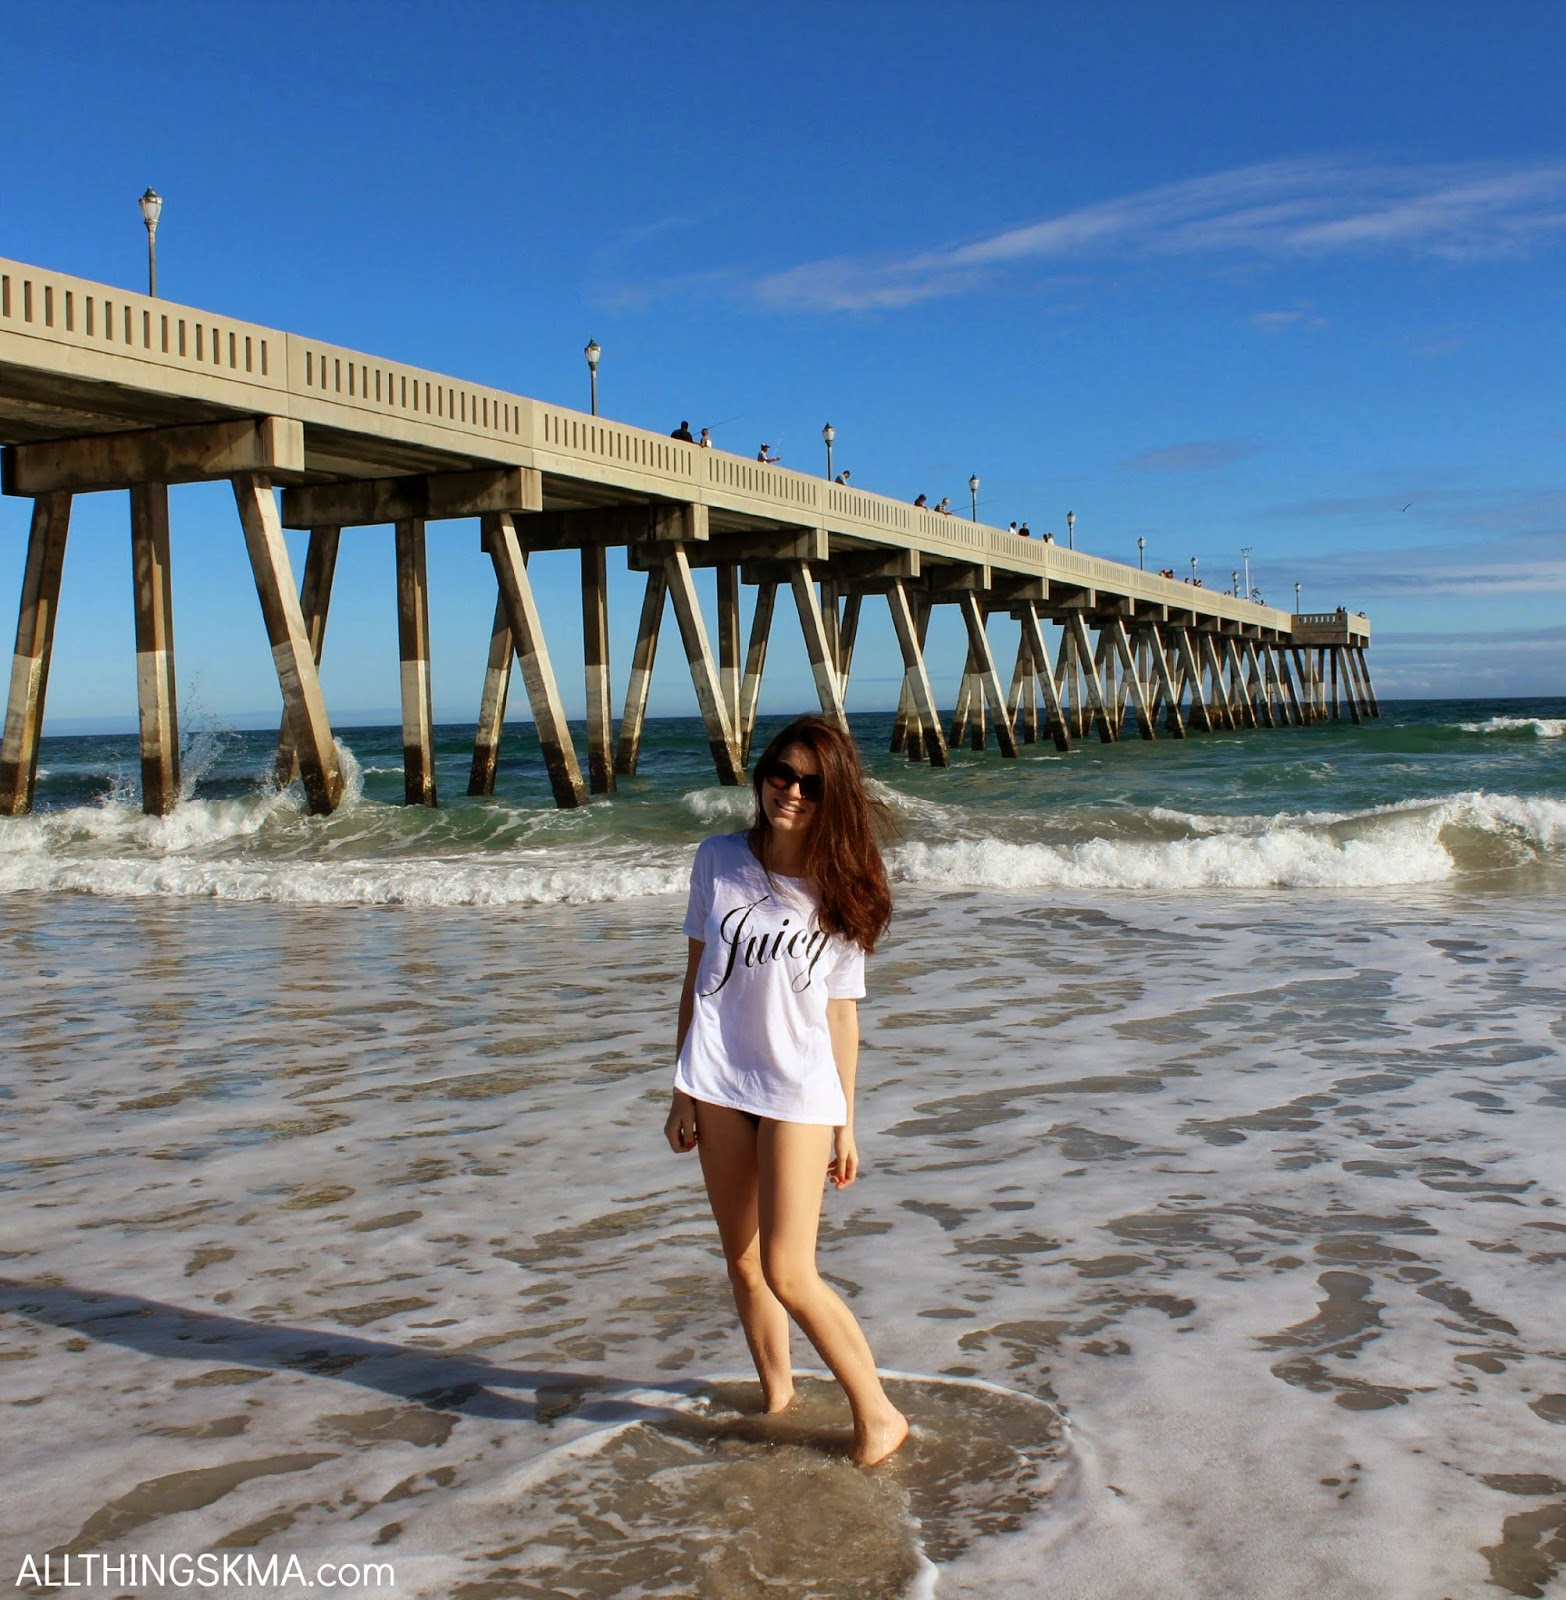 These Photos Were Taken In Wilmington North Carolina At Wrightsville Beach There Weren T Too Many People On The Because Let S Face It